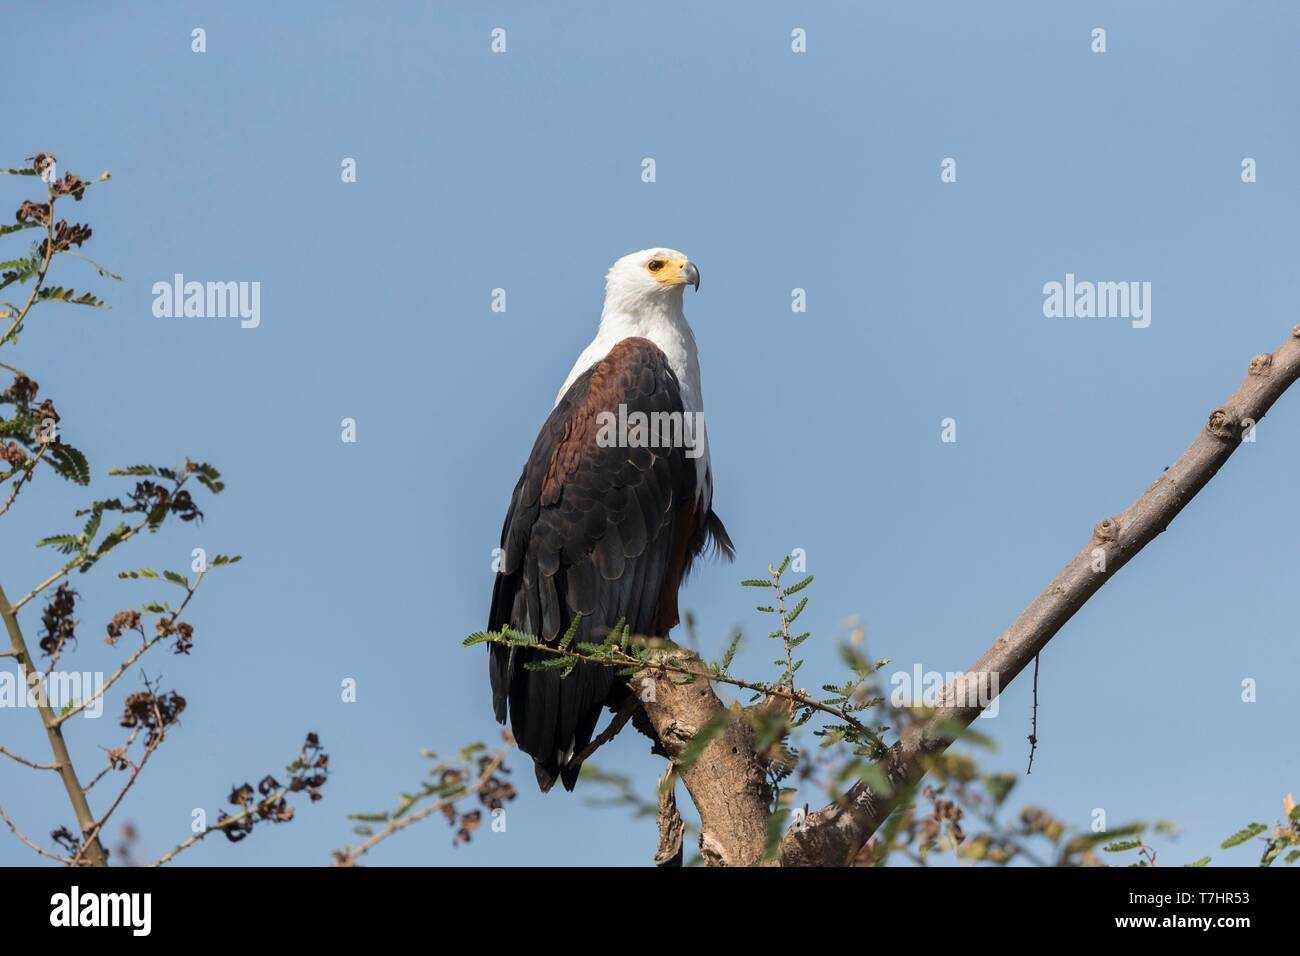 Ethiopia, Rift Valley, Ziway lake, African fish eagle (Haliaeetus vocifer)perched on a branch - Stock Image